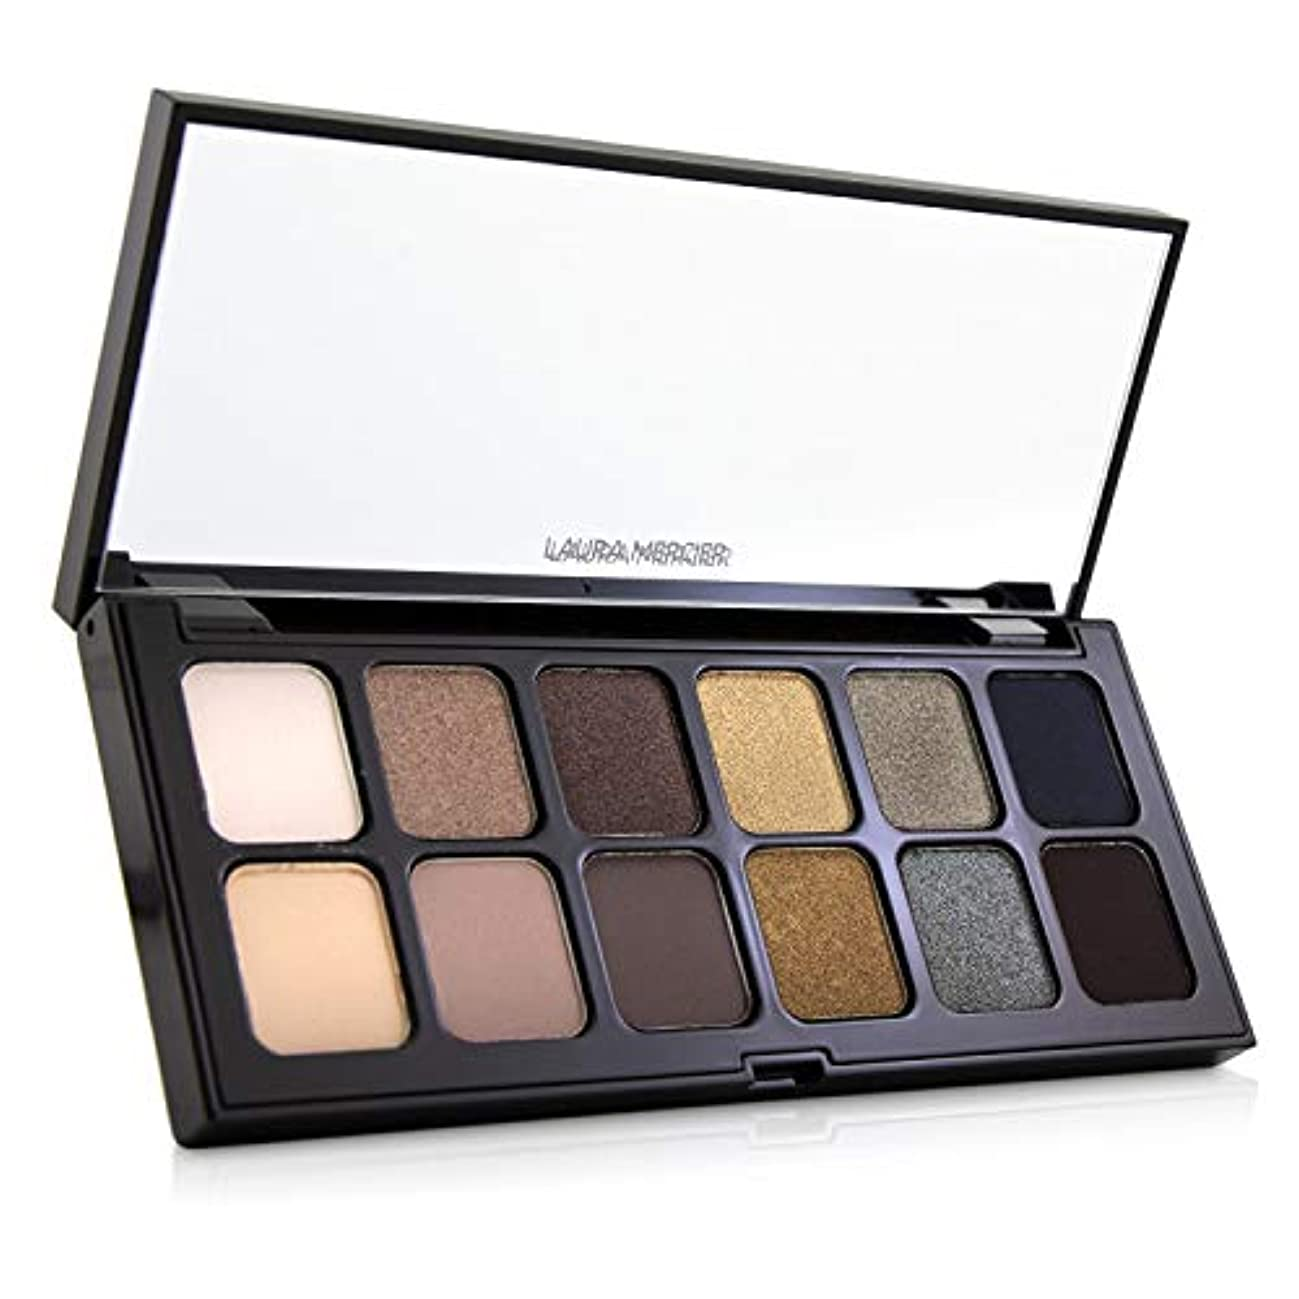 芽手行為ローラ メルシエ Parisian Nudes Eye Shadow Palette (12x Eyeshadow) 12x1g/0.03oz並行輸入品